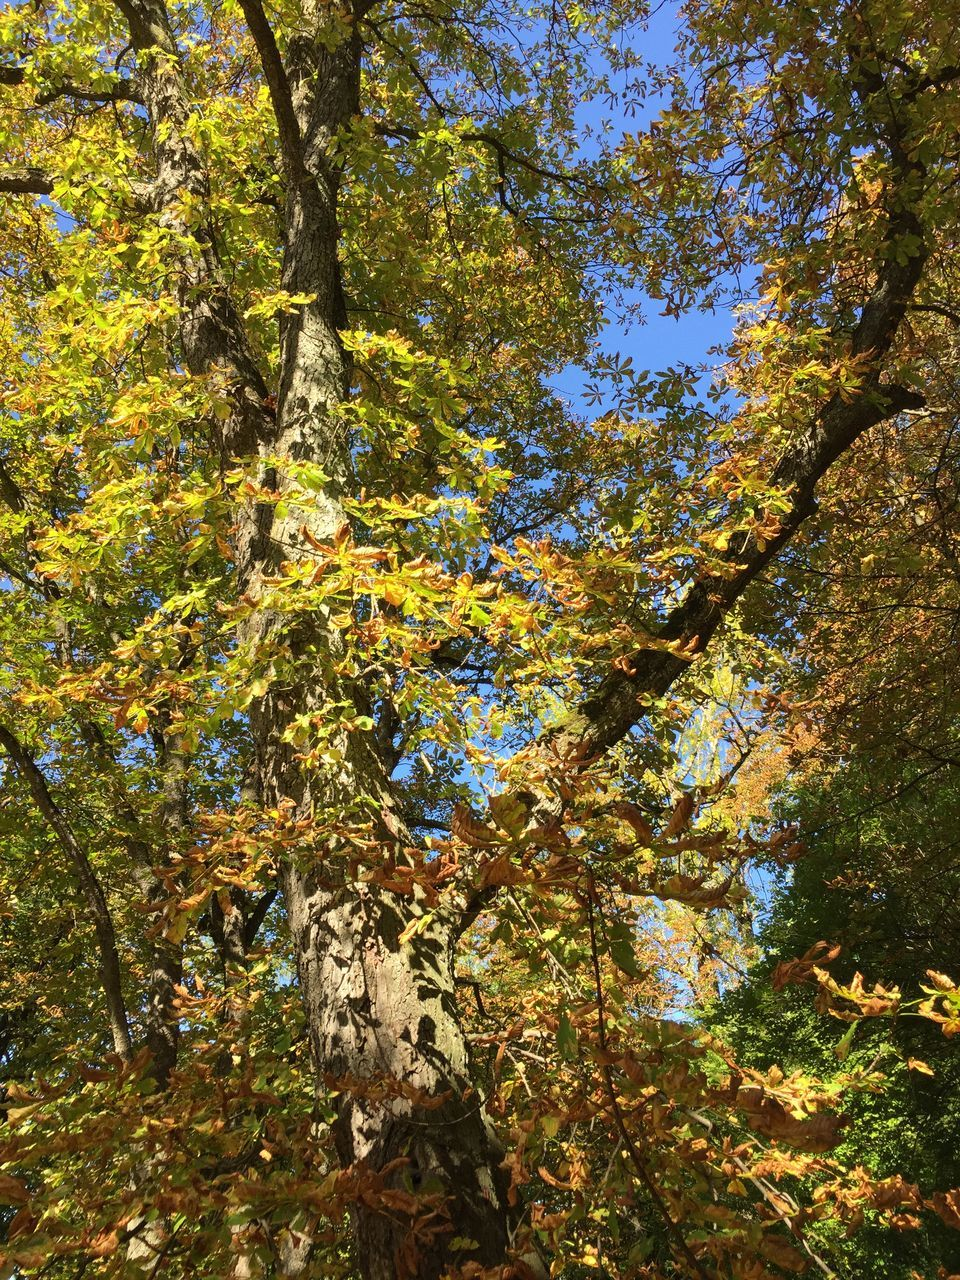 tree, growth, nature, branch, beauty in nature, day, no people, outdoors, leaf, autumn, tranquility, low angle view, tree trunk, forest, scenics, flower, freshness, fragility, close-up